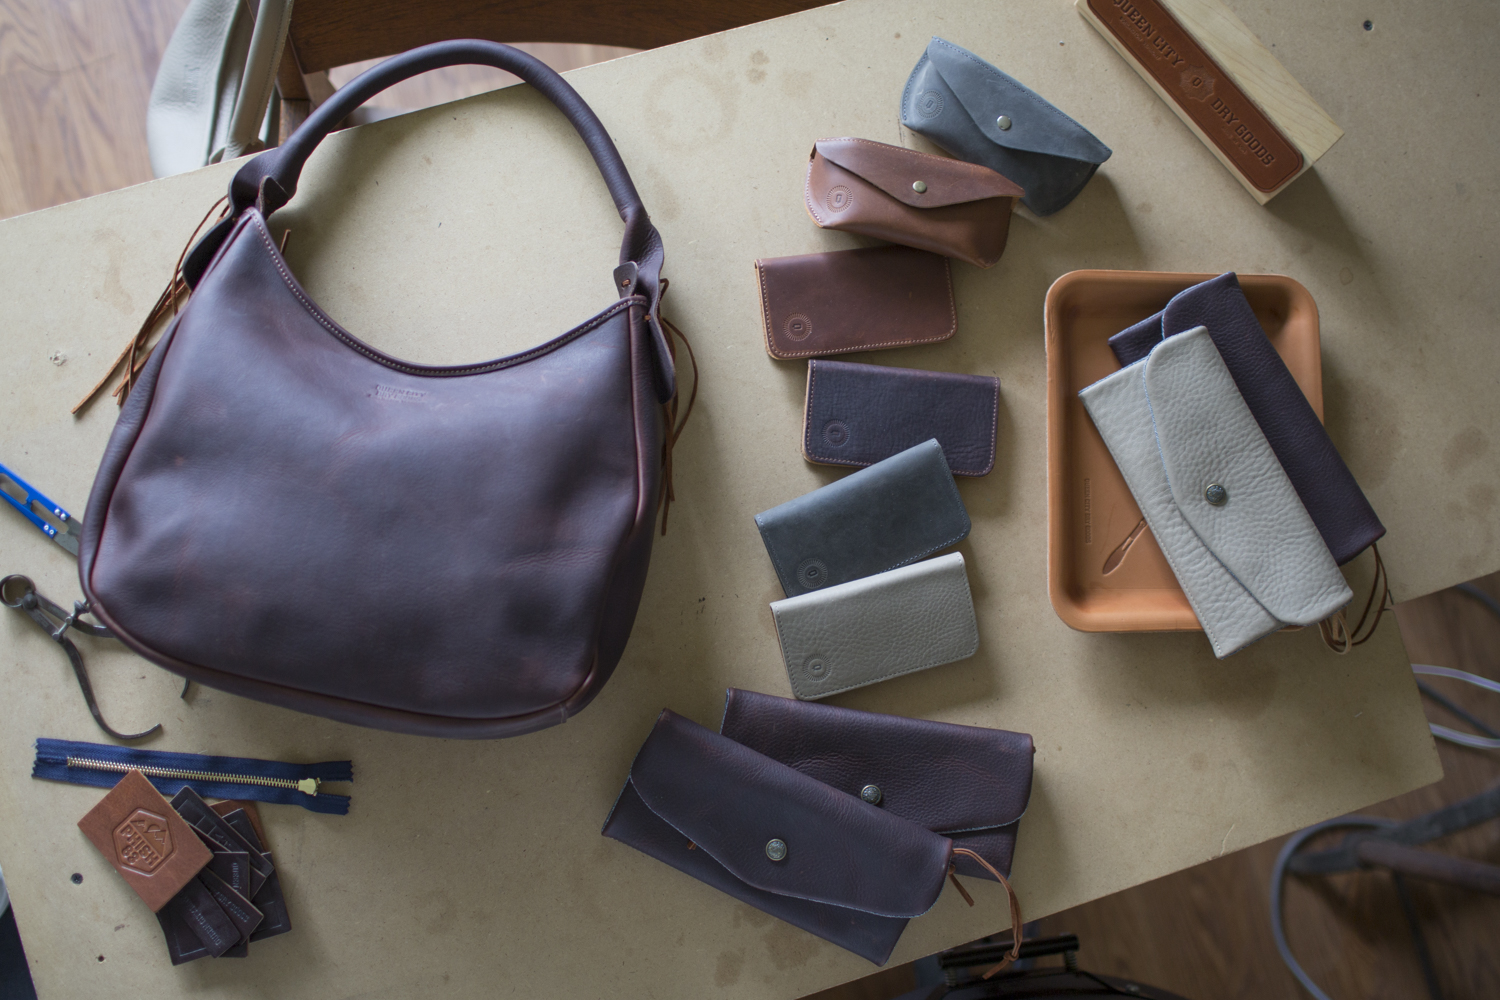 Iphone cases, Wallets, eyewear cases and the Vagabond bag